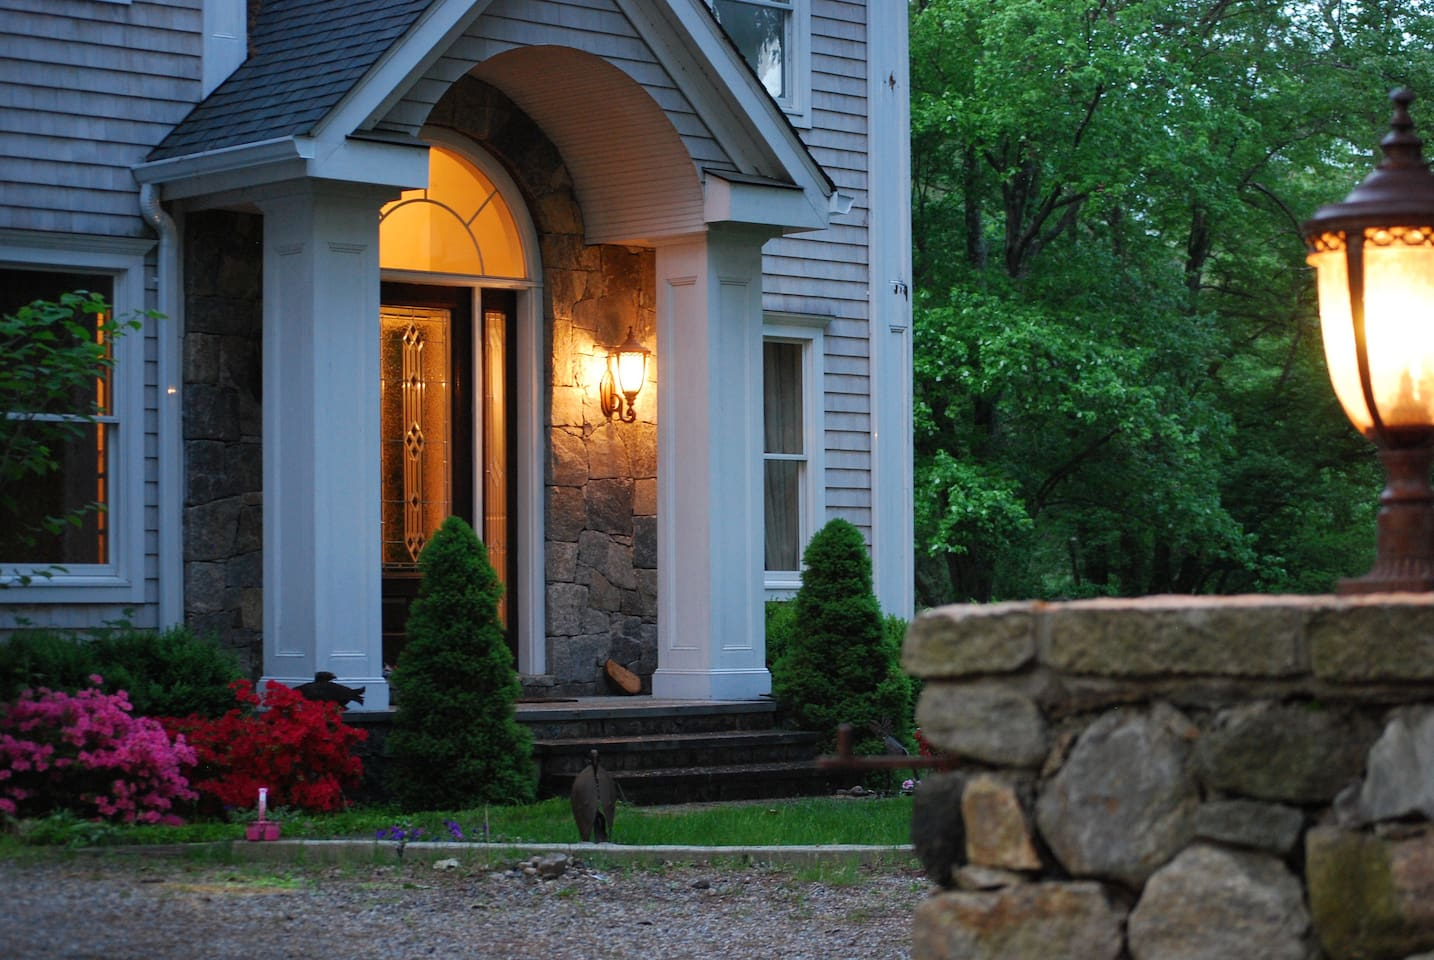 Charming entry-way